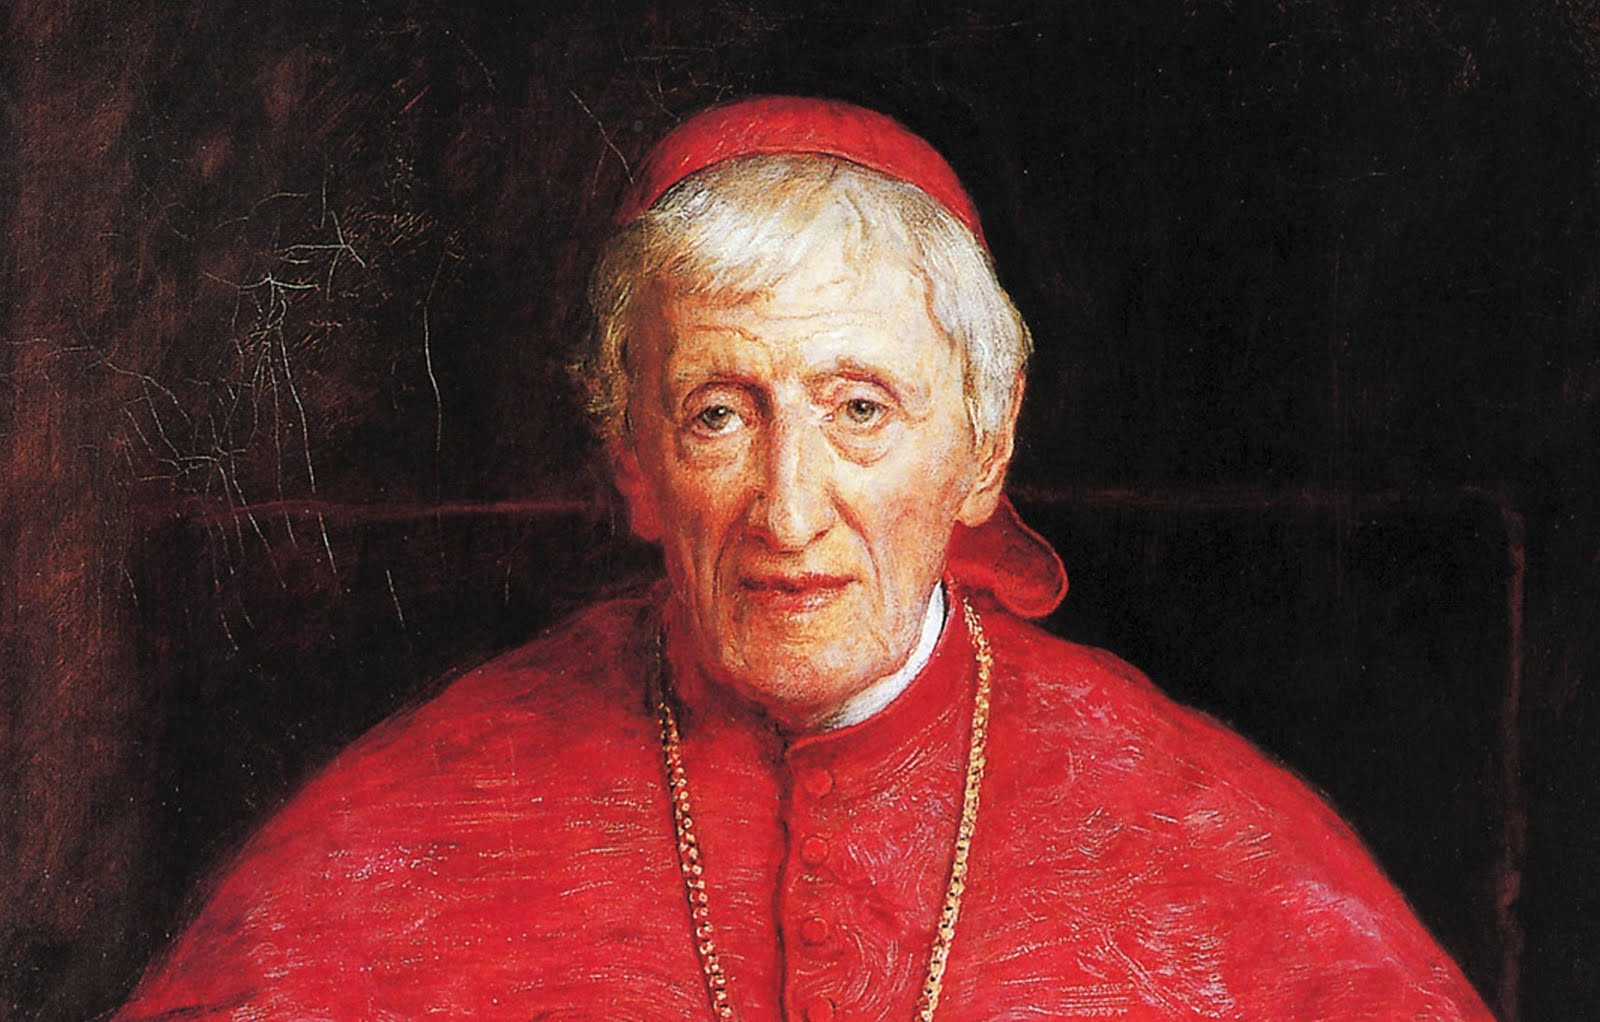 john henry newman essays John henry newman facts, information, pictures | encyclopediacom                 wwwencyclopediacom/people/philosophy-and-religion/roman-catholic-and-orthodox-churches-general-biographies/john-henry.